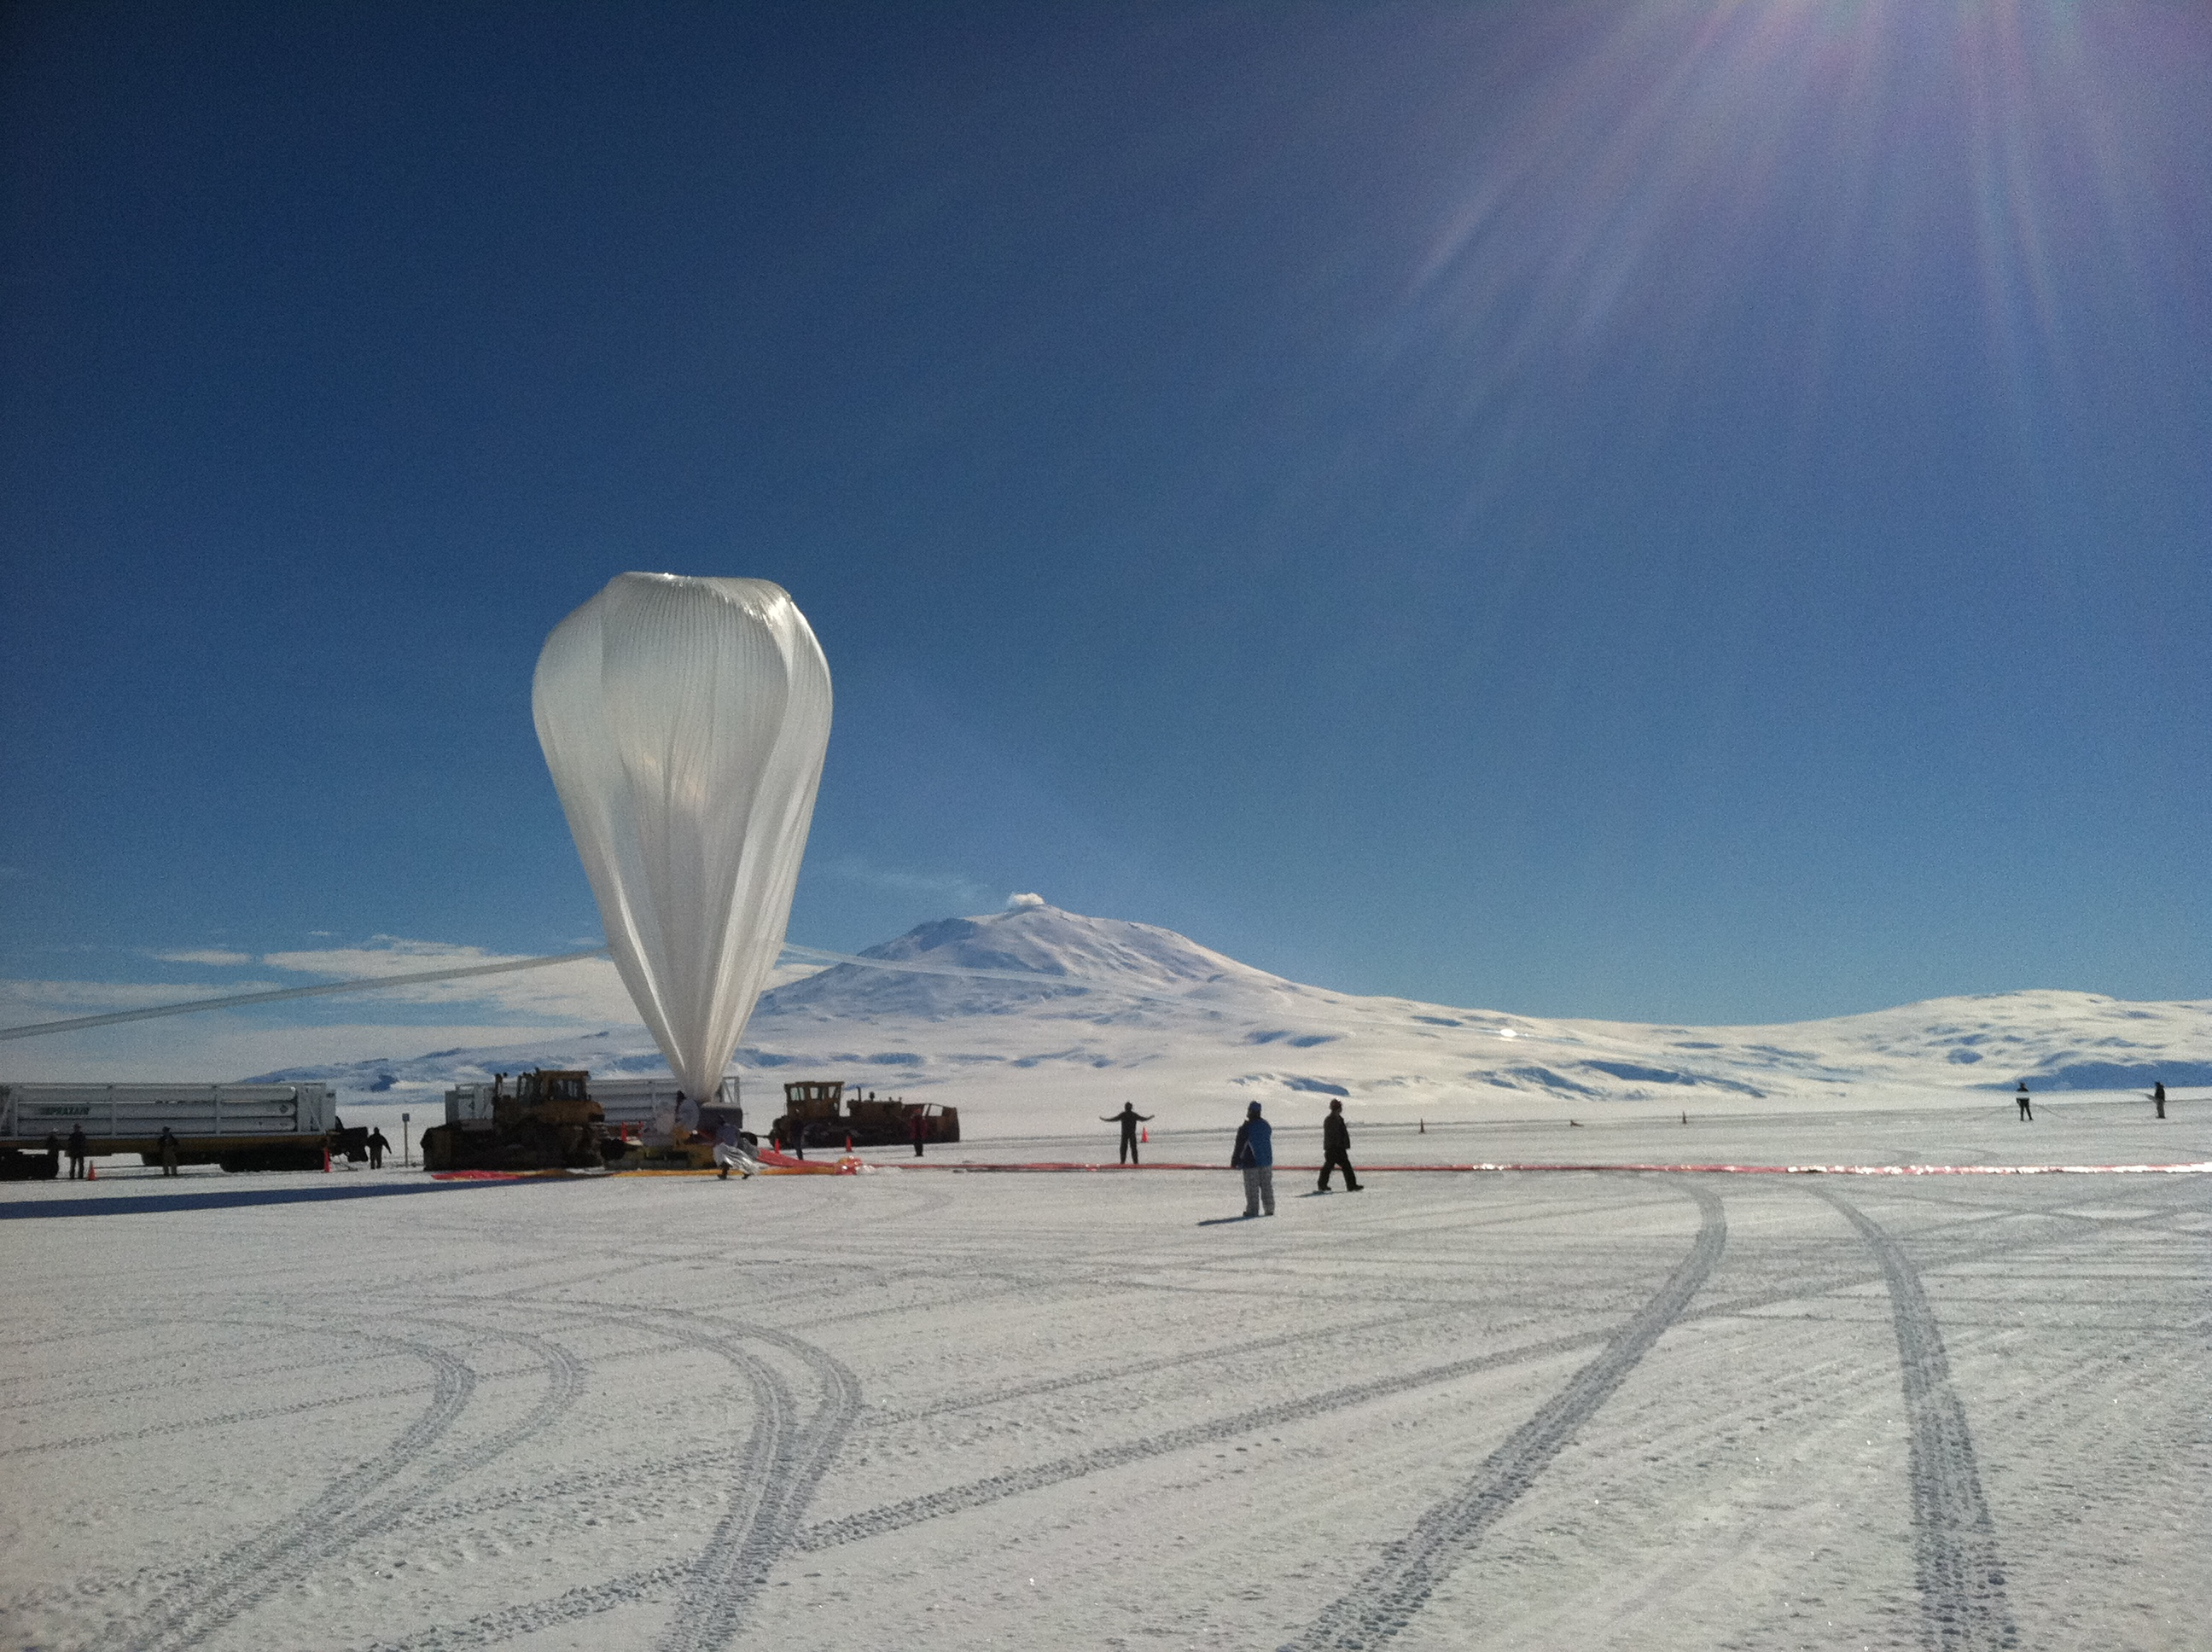 nasa antarctica - photo #29